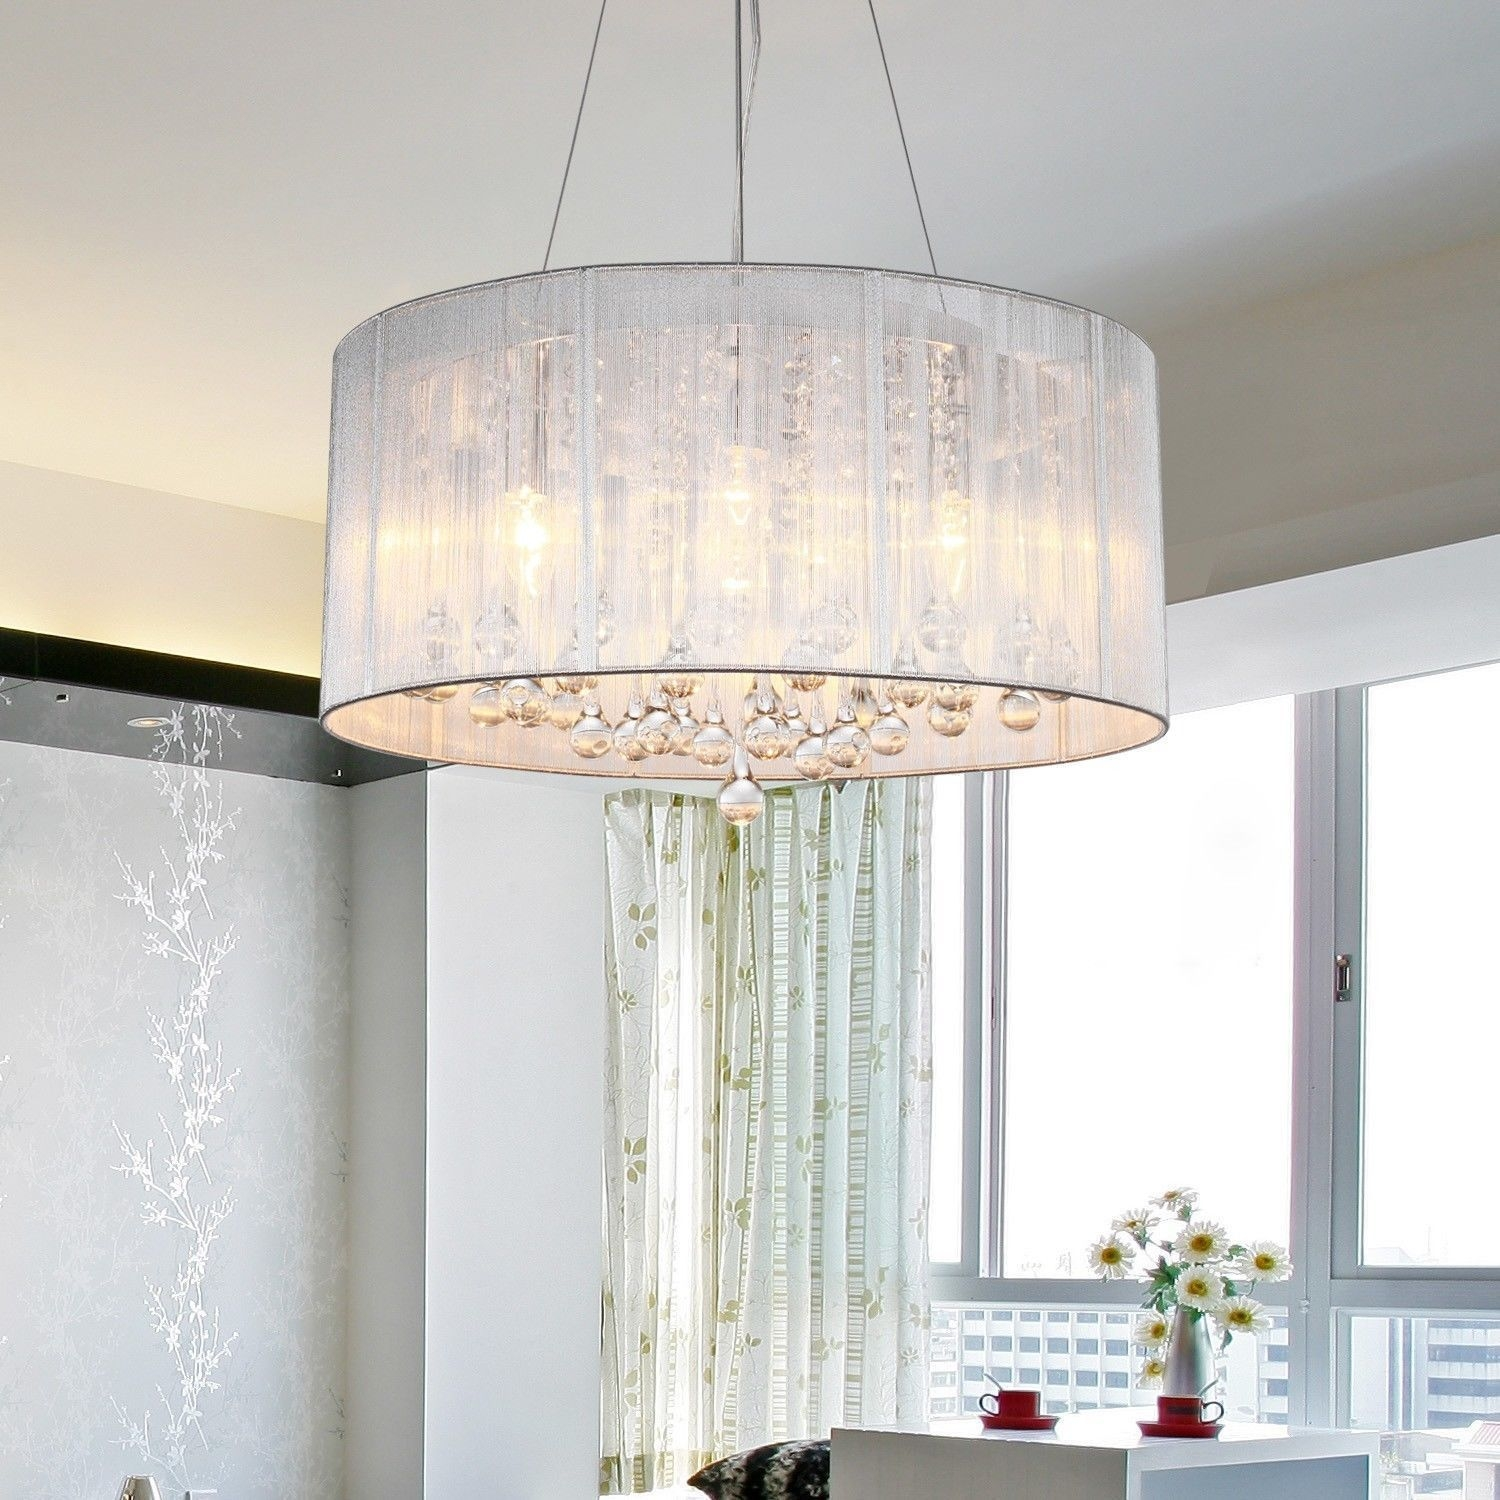 Very Awesome Lamp Shade Chandelier Best Home Decor Inspirations Pertaining To Chandelier Lampshades (Image 24 of 25)